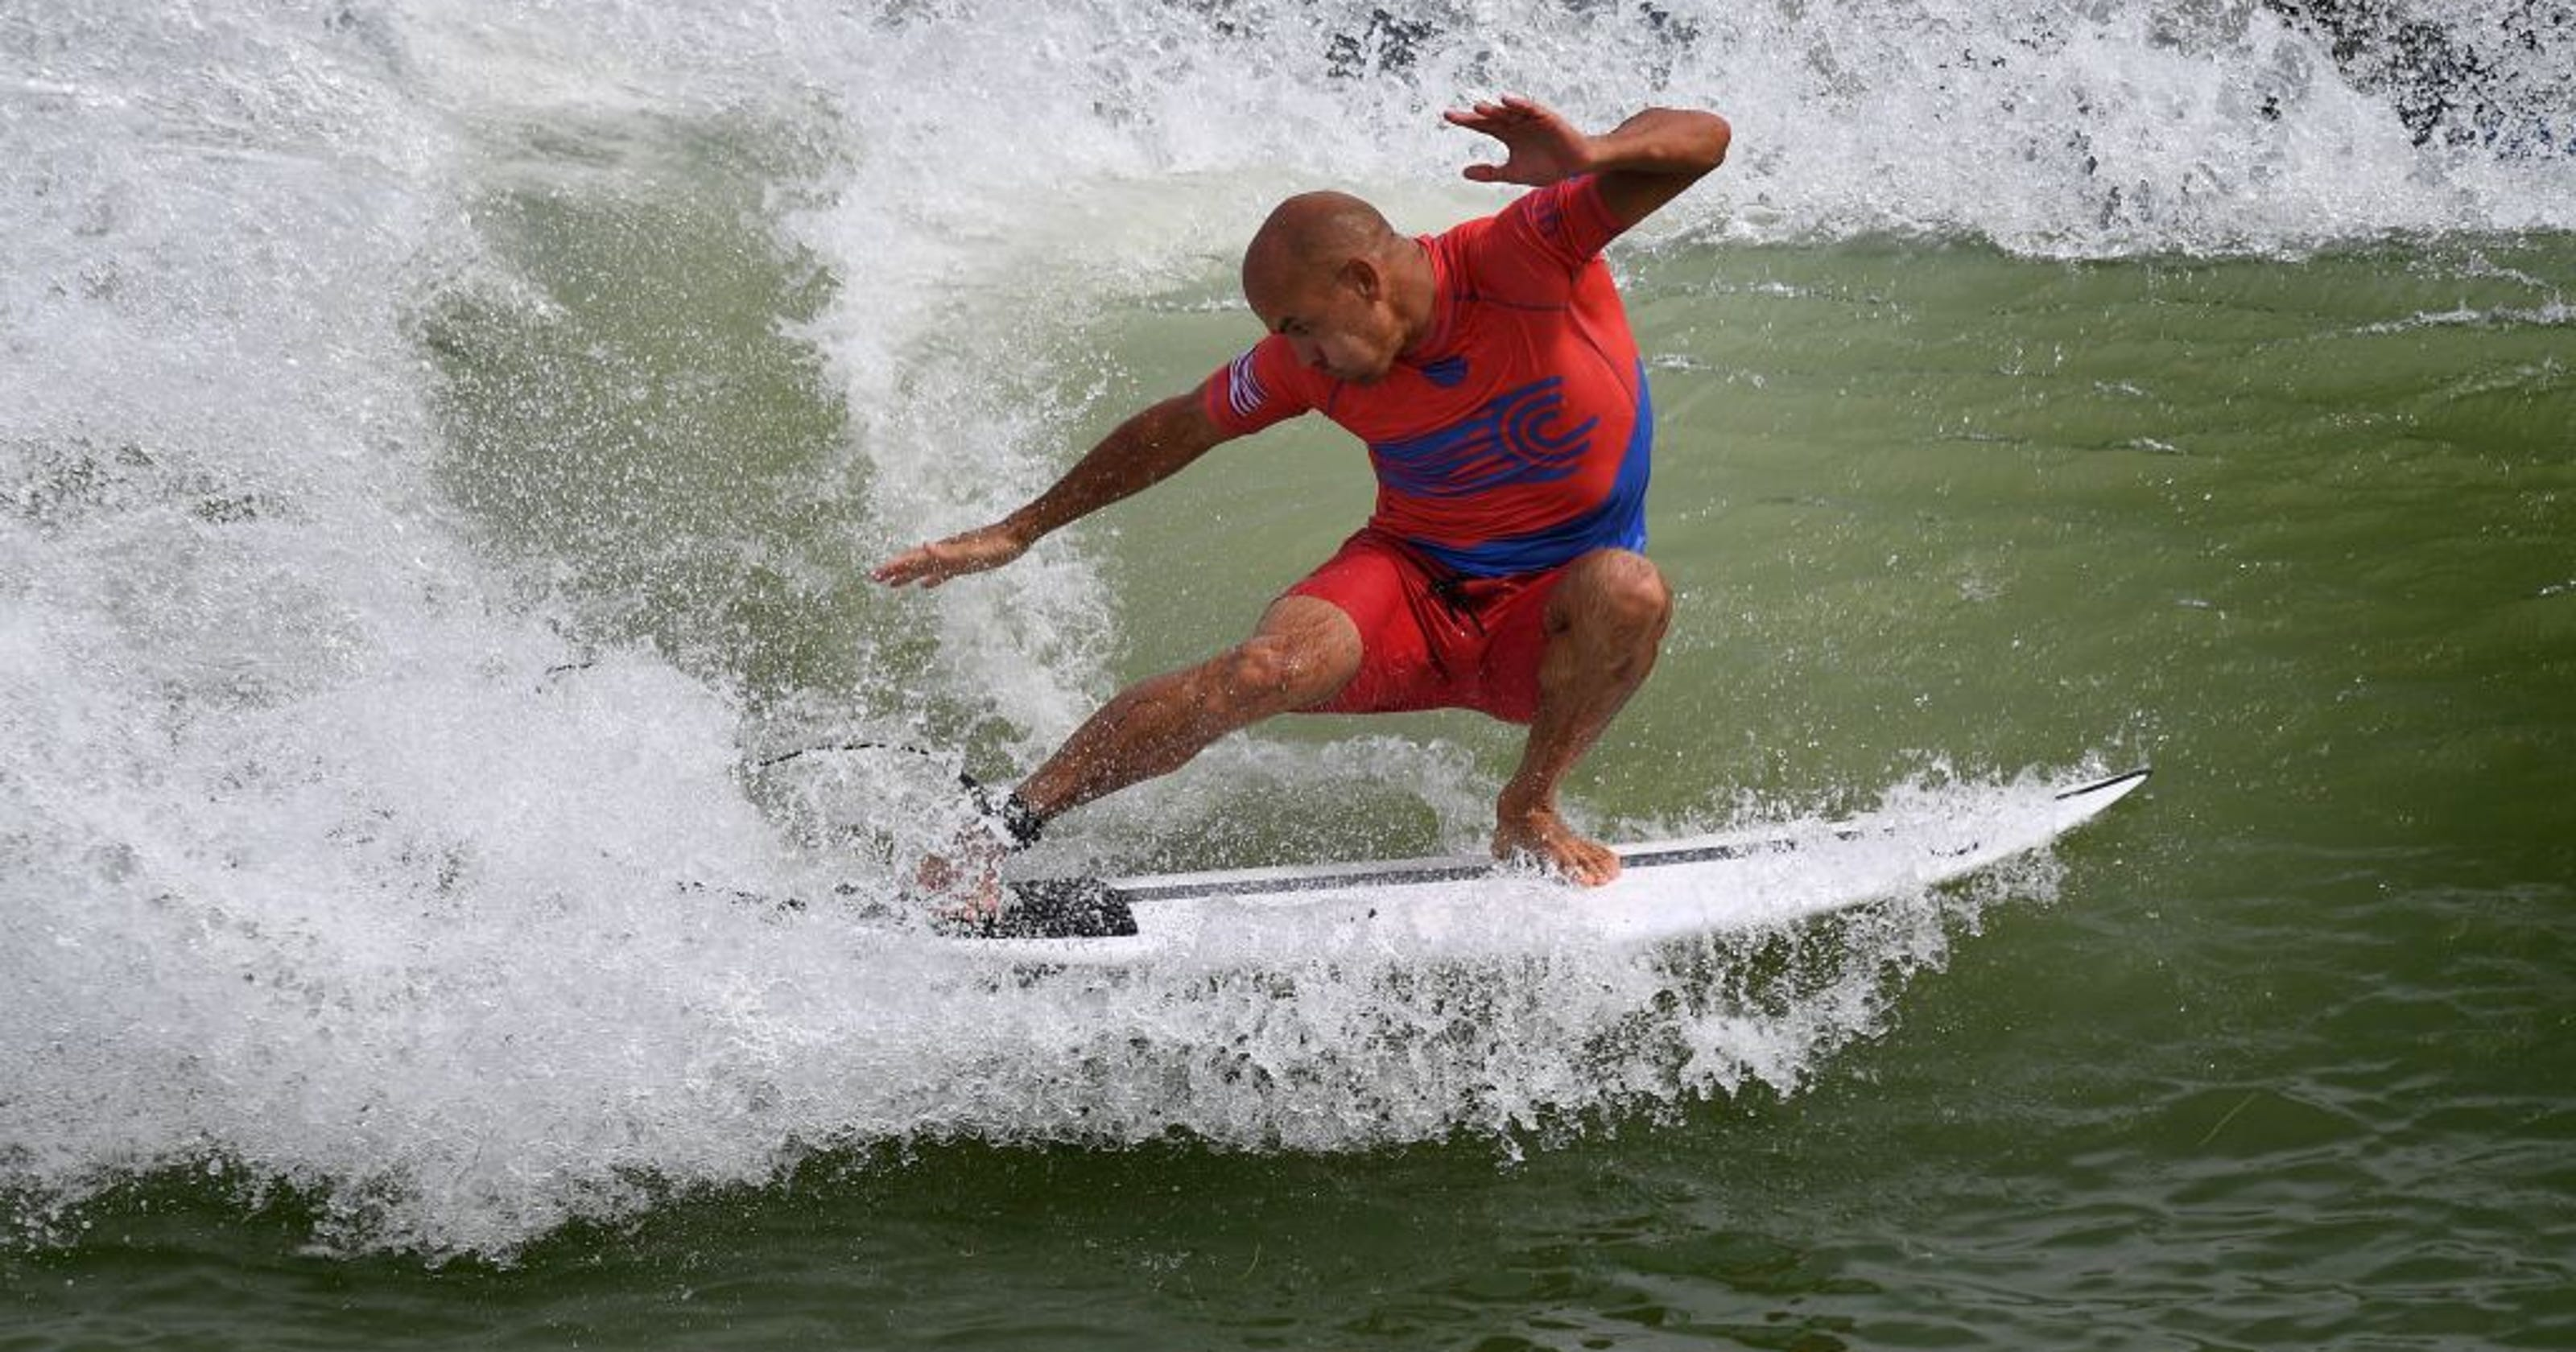 136d3d1a65 Pro surfing without Kelly Slater  It s been done before